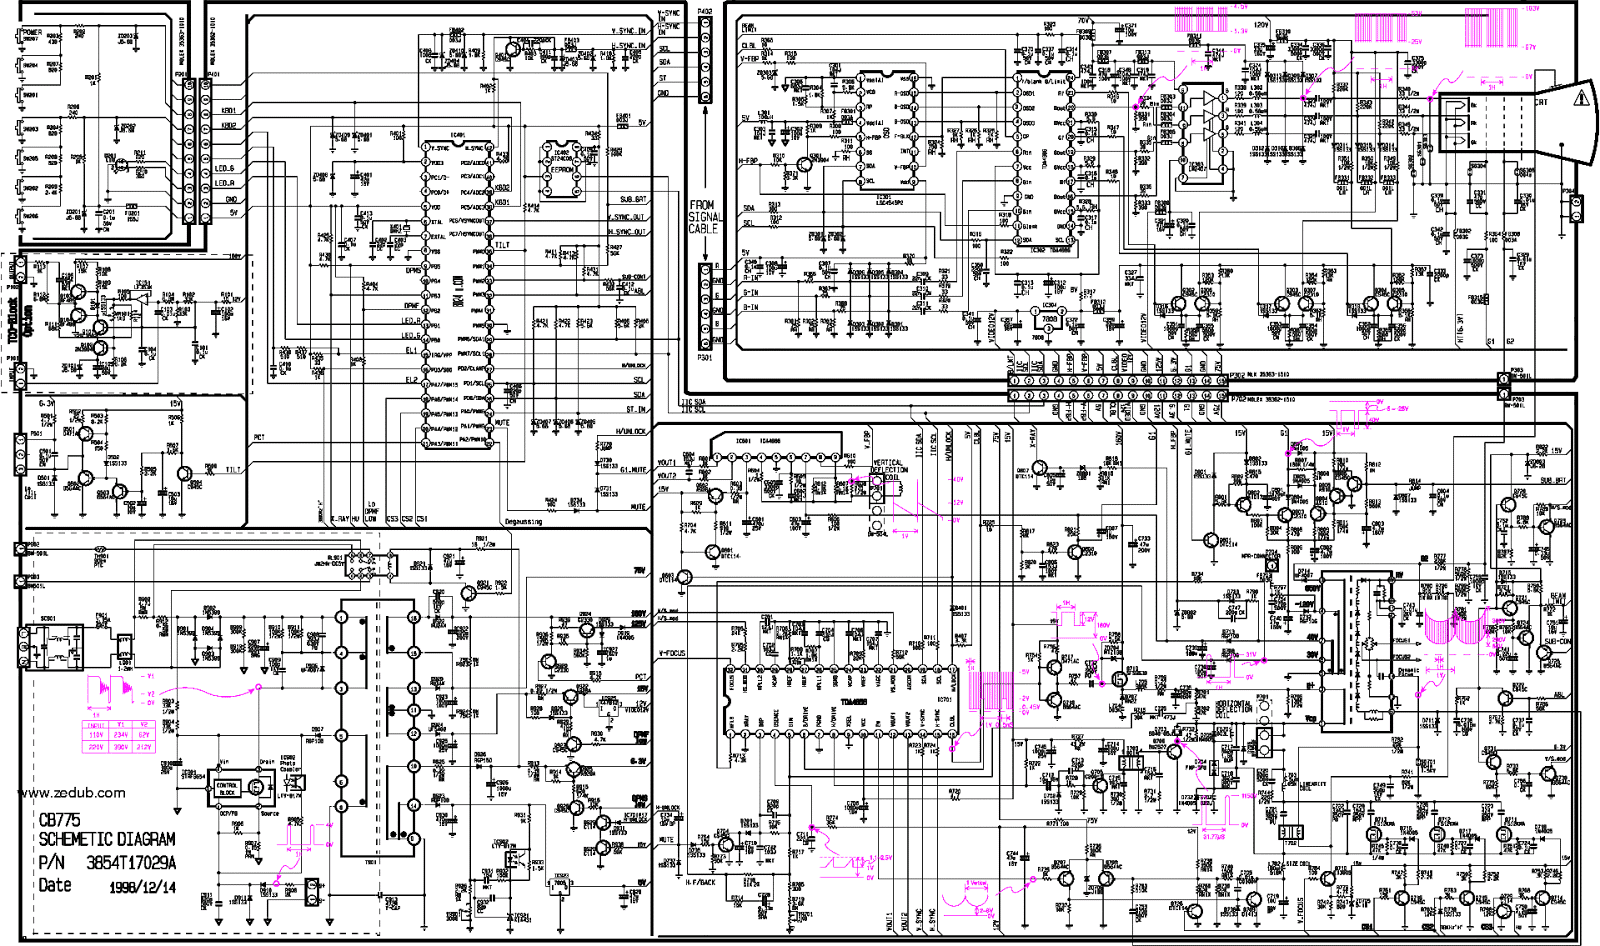 crt tv circuit diagram wiring diagram forward crt television schematic diagram crt tv circuit diagram [ 1600 x 946 Pixel ]